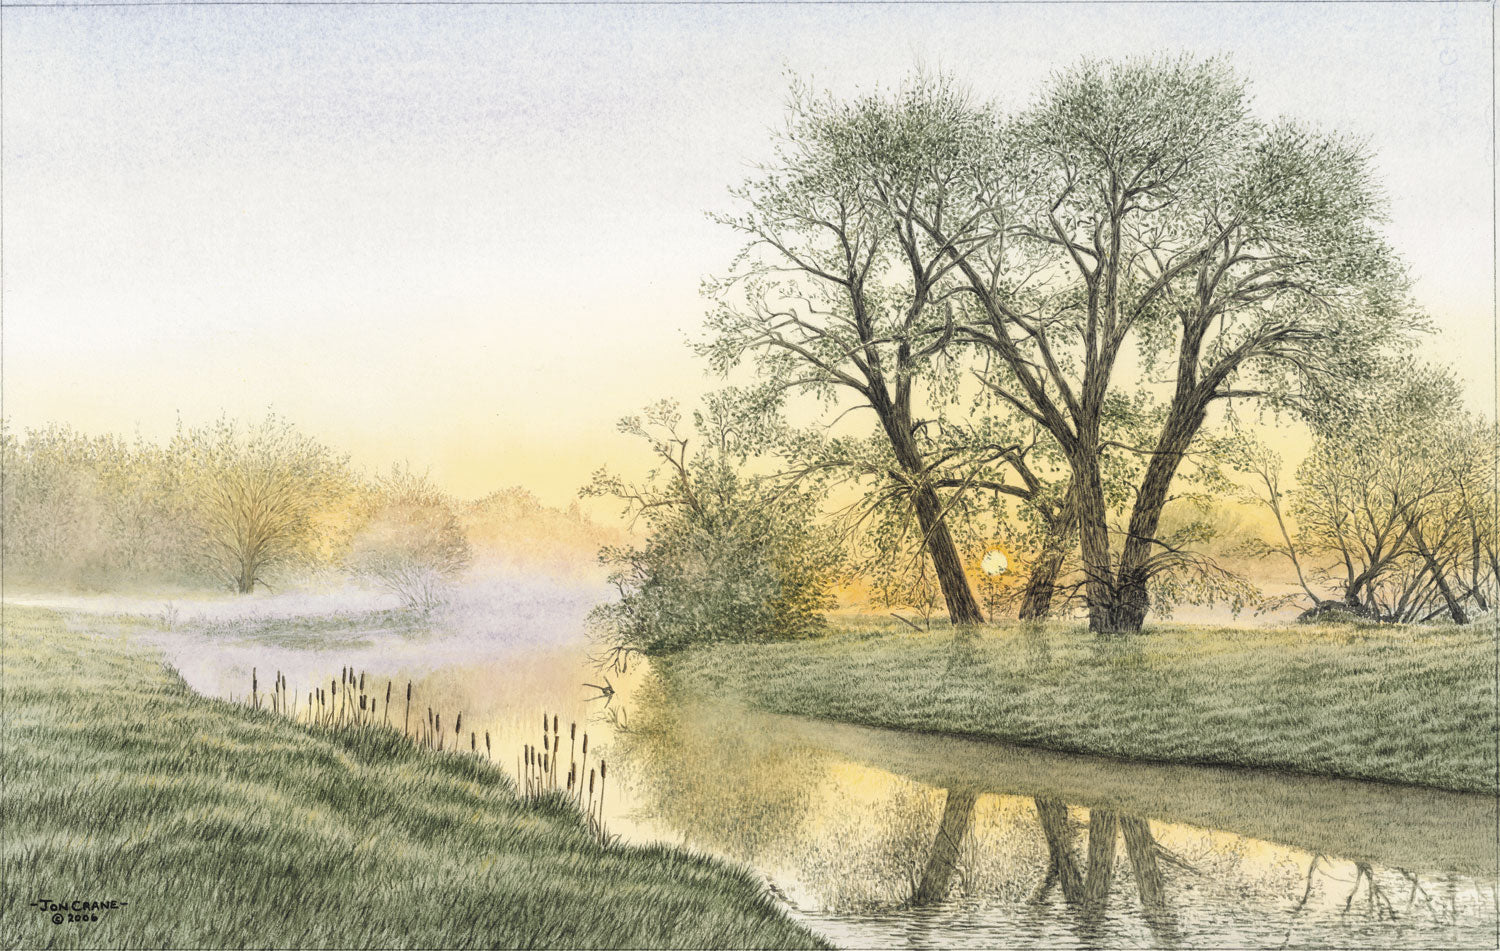 A BRILLIANT BEGINNING by Jon Crane -- Fine Art Watercolors